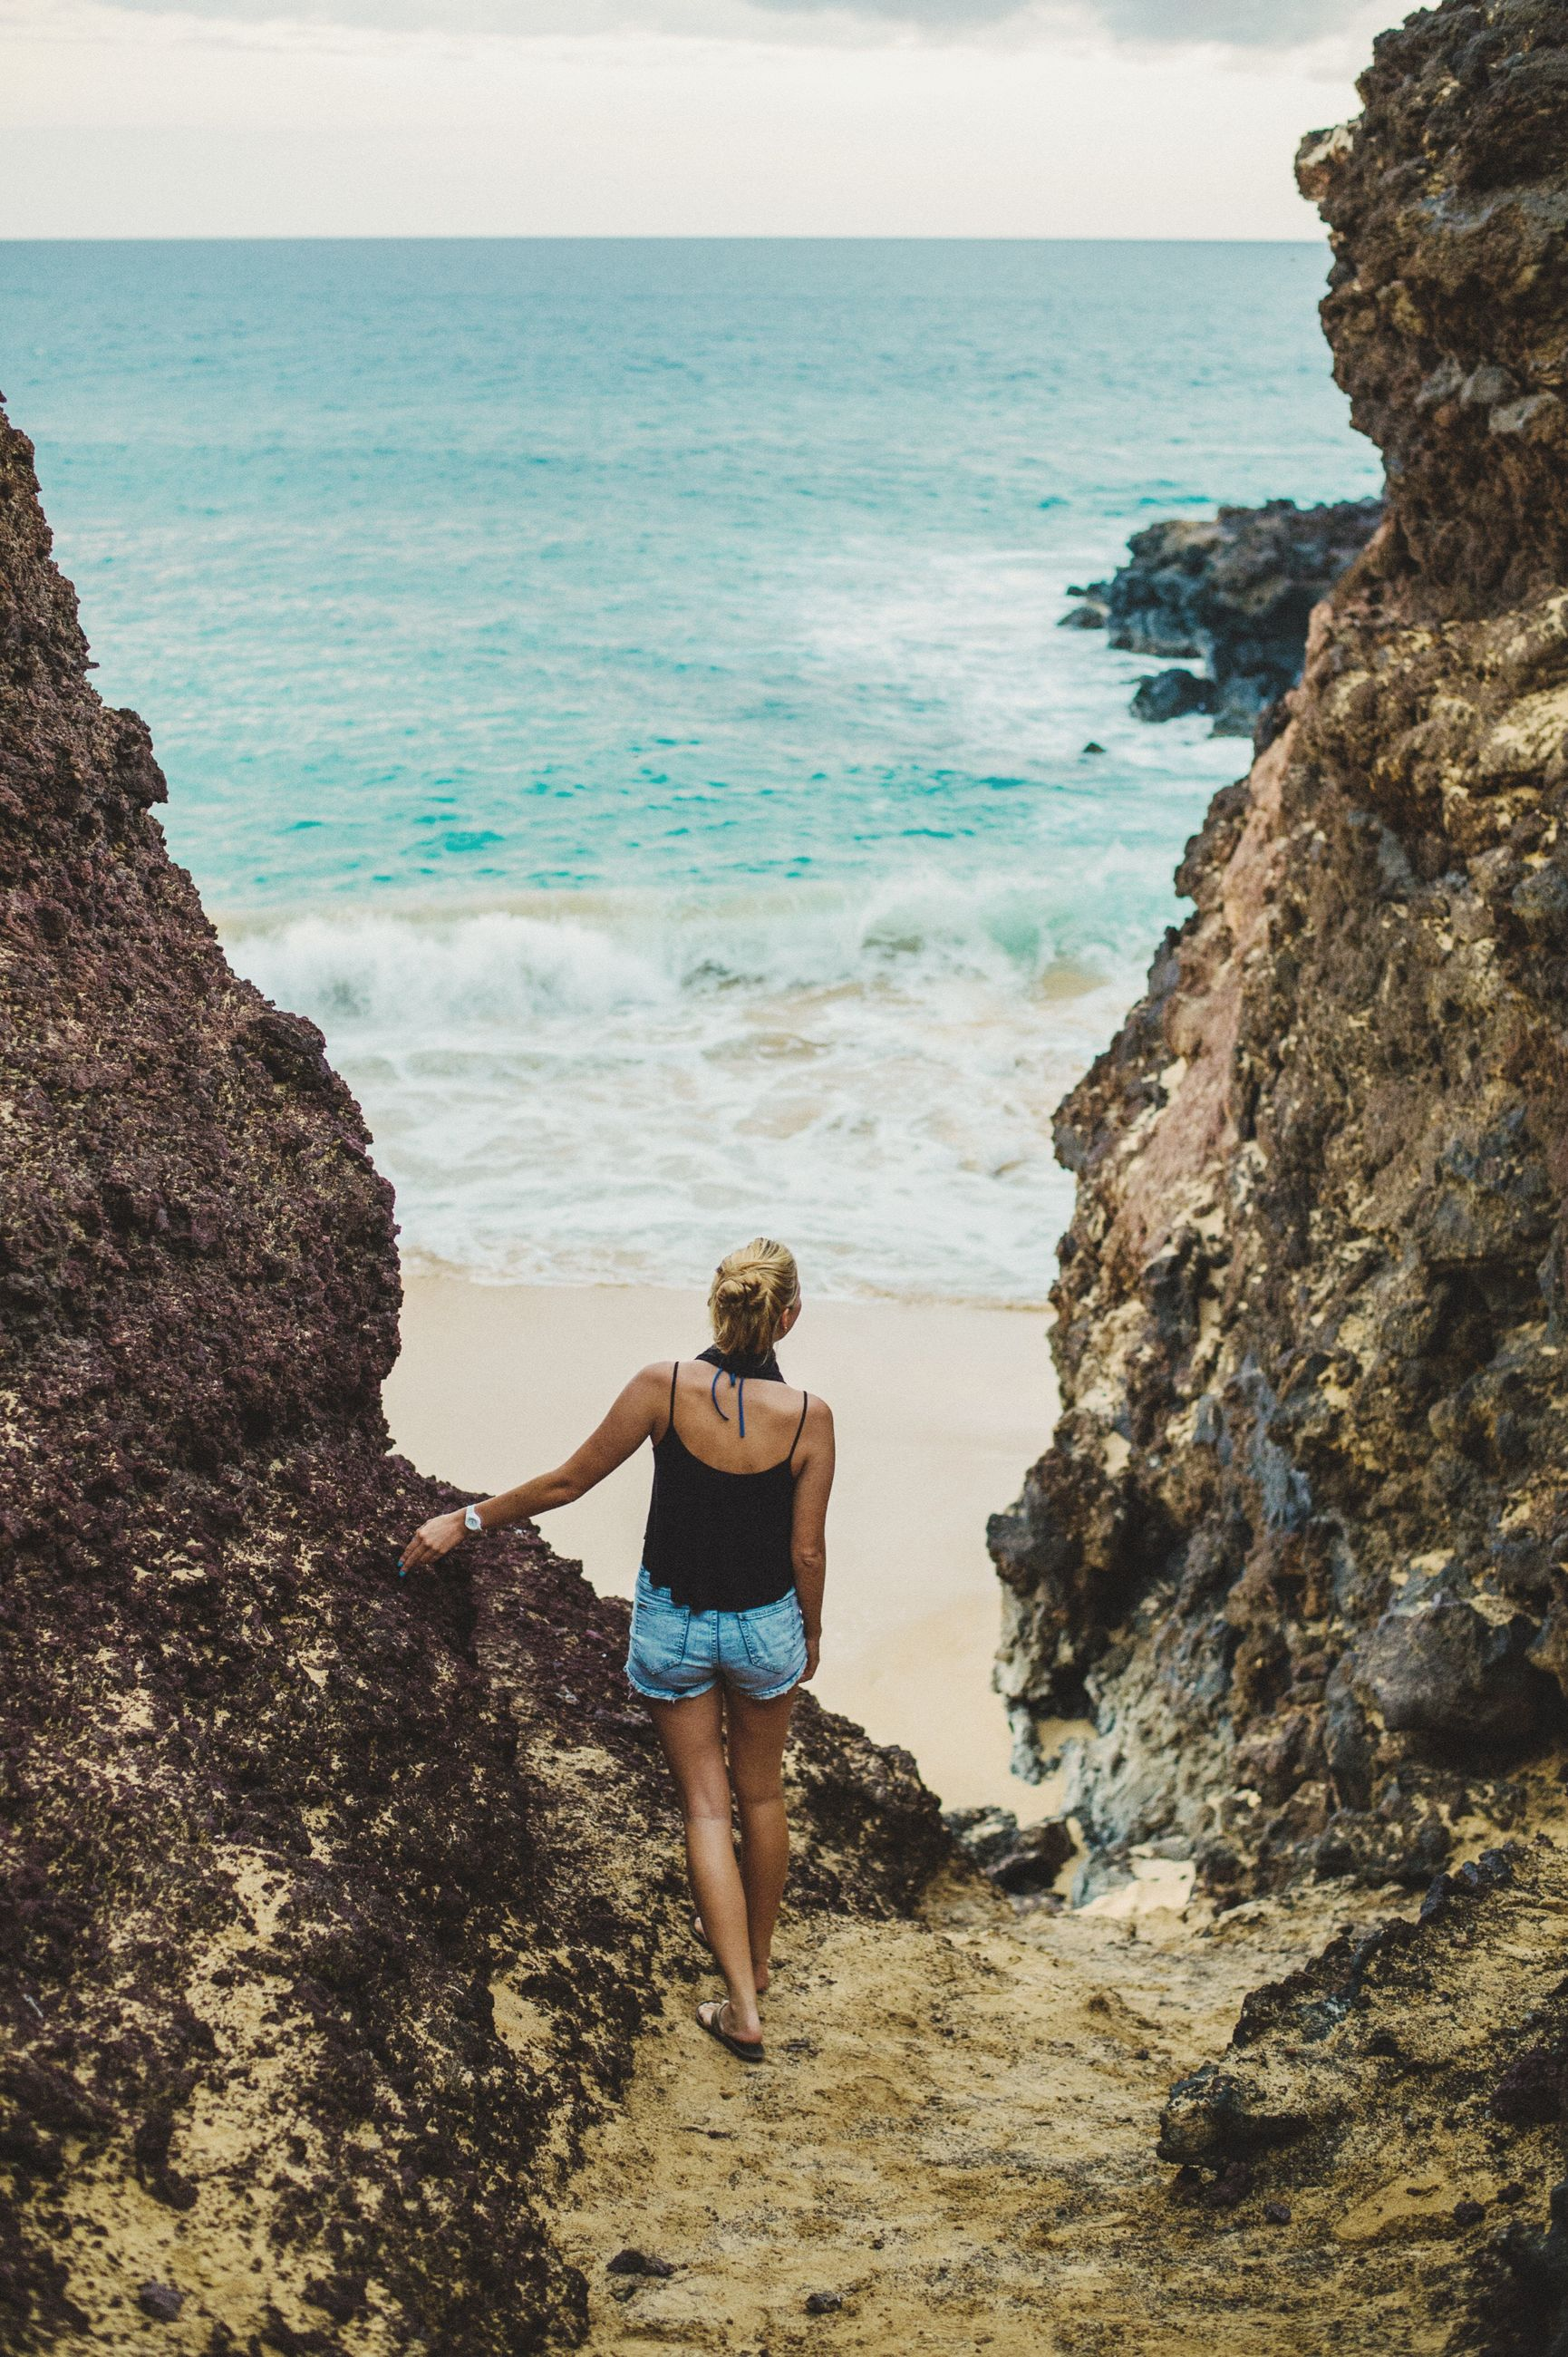 sea, horizon over water, beach, water, shore, lifestyles, leisure activity, full length, beauty in nature, scenics, tranquil scene, tranquility, vacations, nature, sky, rock - object, idyllic, casual clothing, day, outdoors, rock formation, remote, coastline, blue